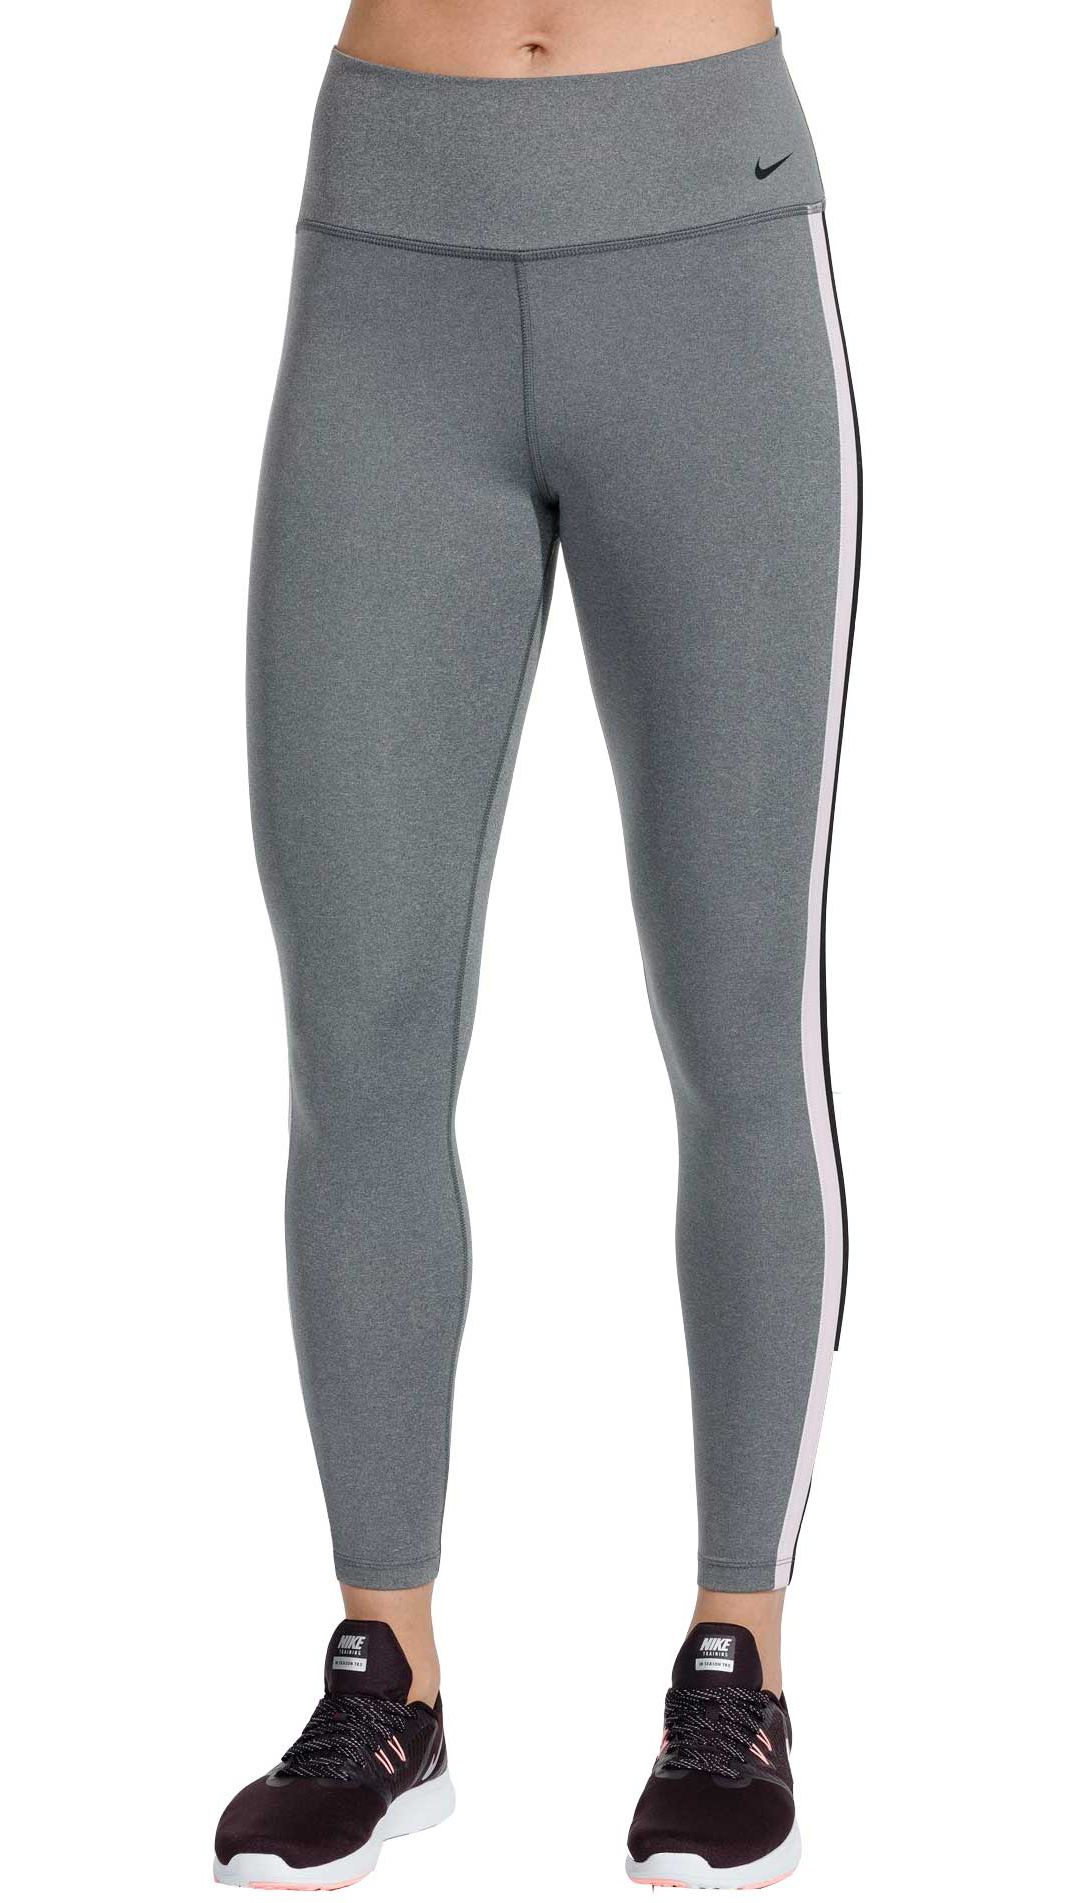 fcf6c91870a075 Nike One Women's Power 7/8 Training Tights. noImageFound. Previous